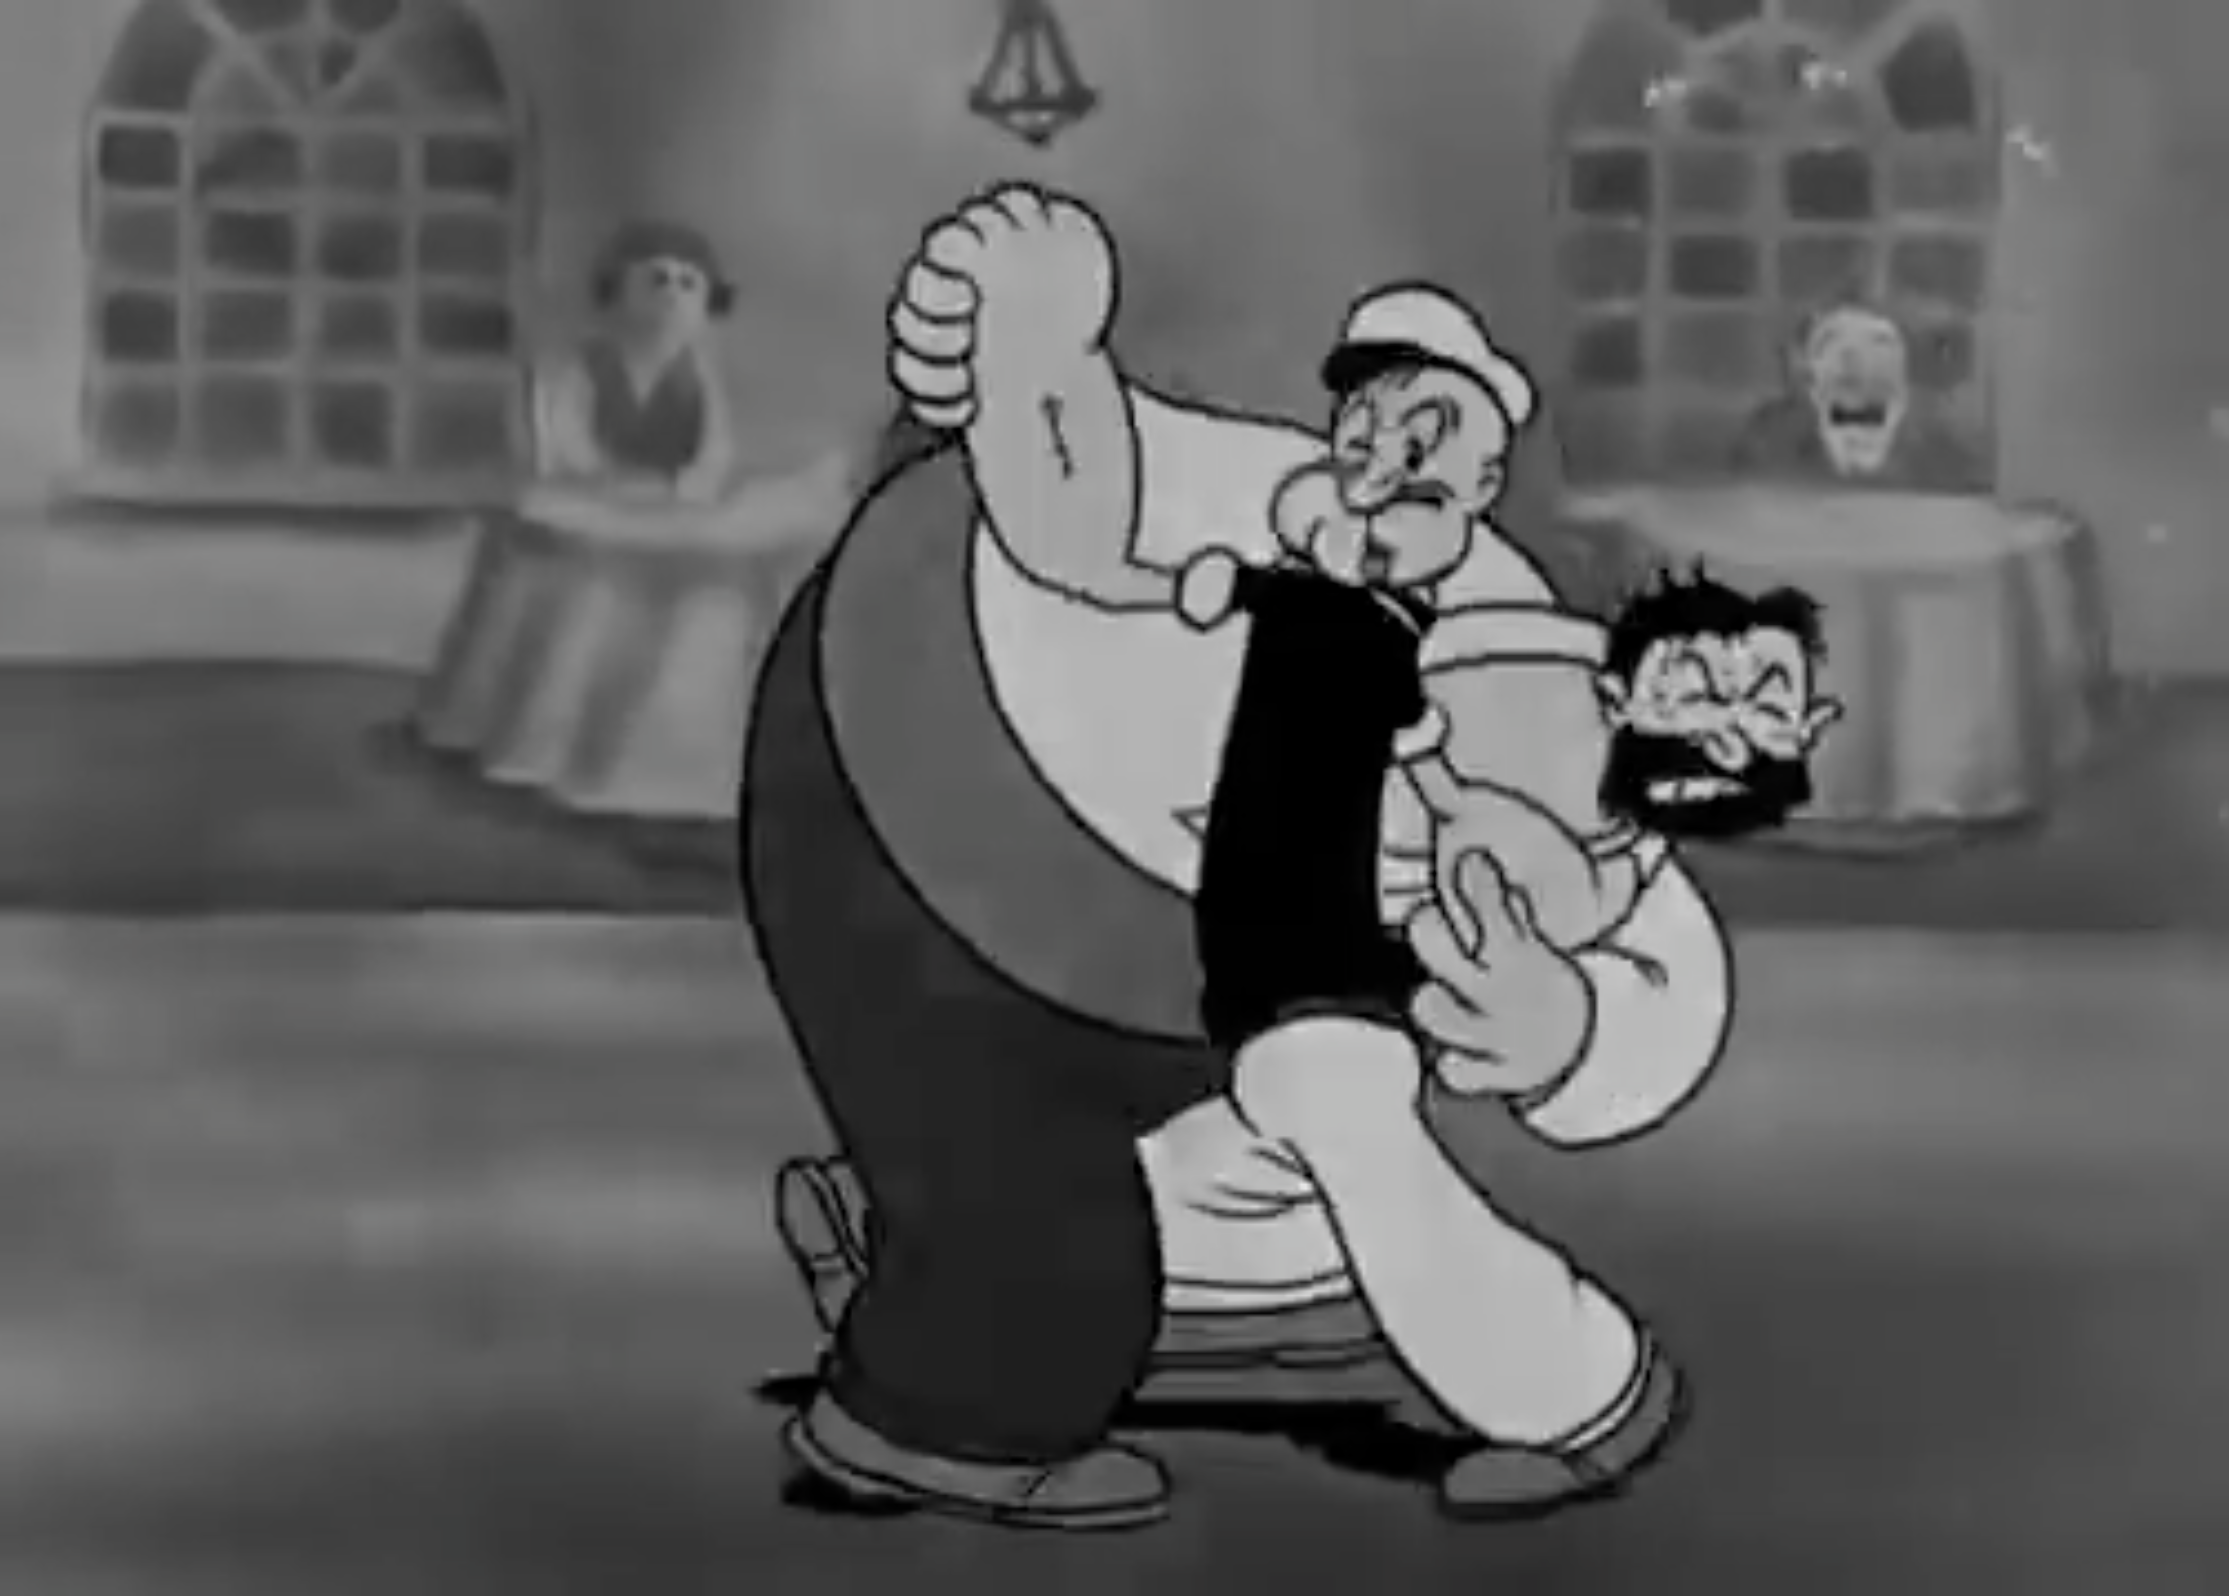 Popeye [almost] Tangos with Bluto, 1934 [still taken from cartoon]